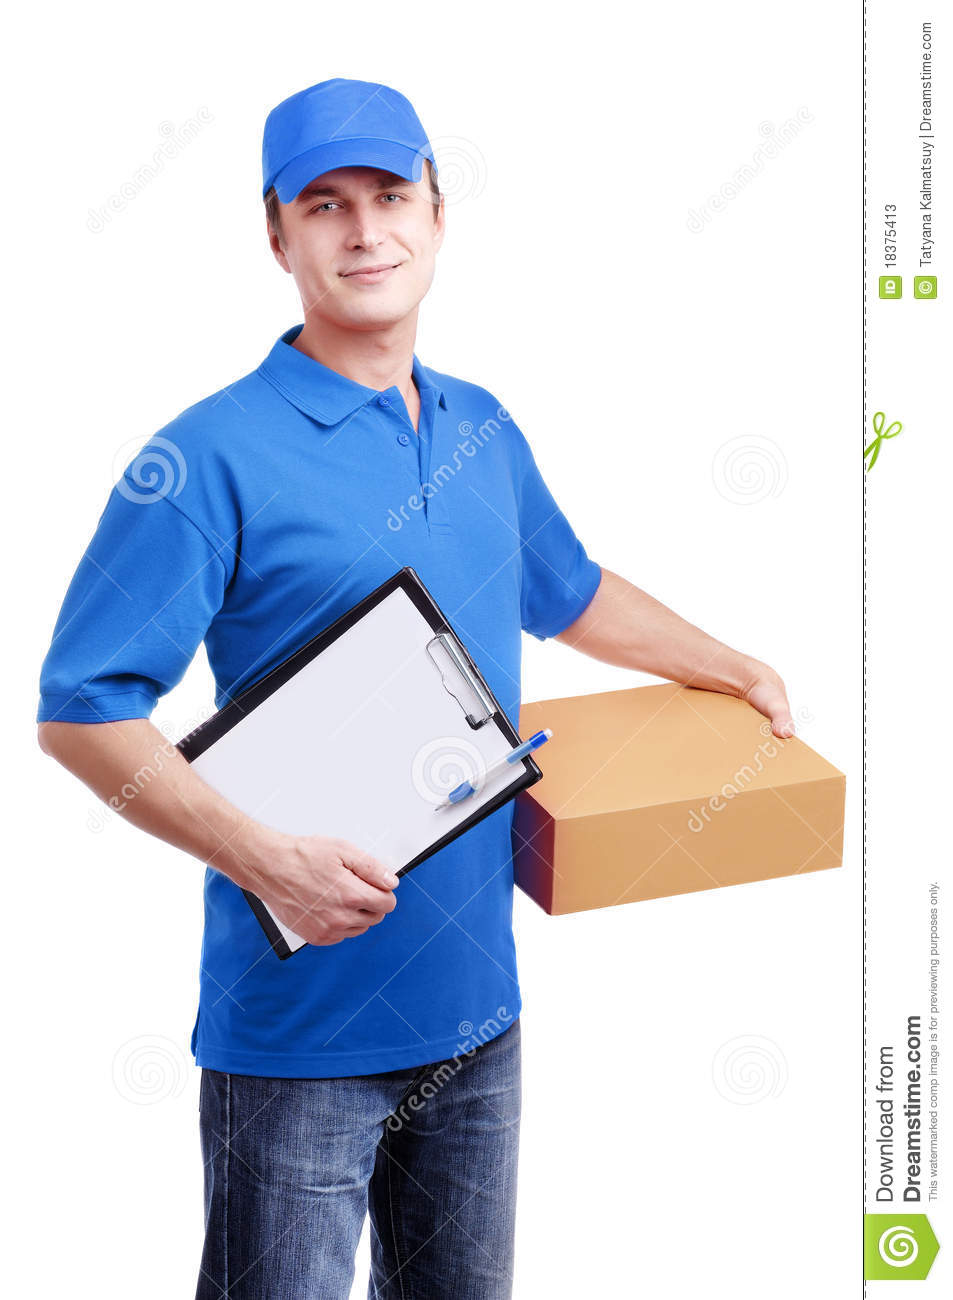 courier in blue uniform stock image  image of courier